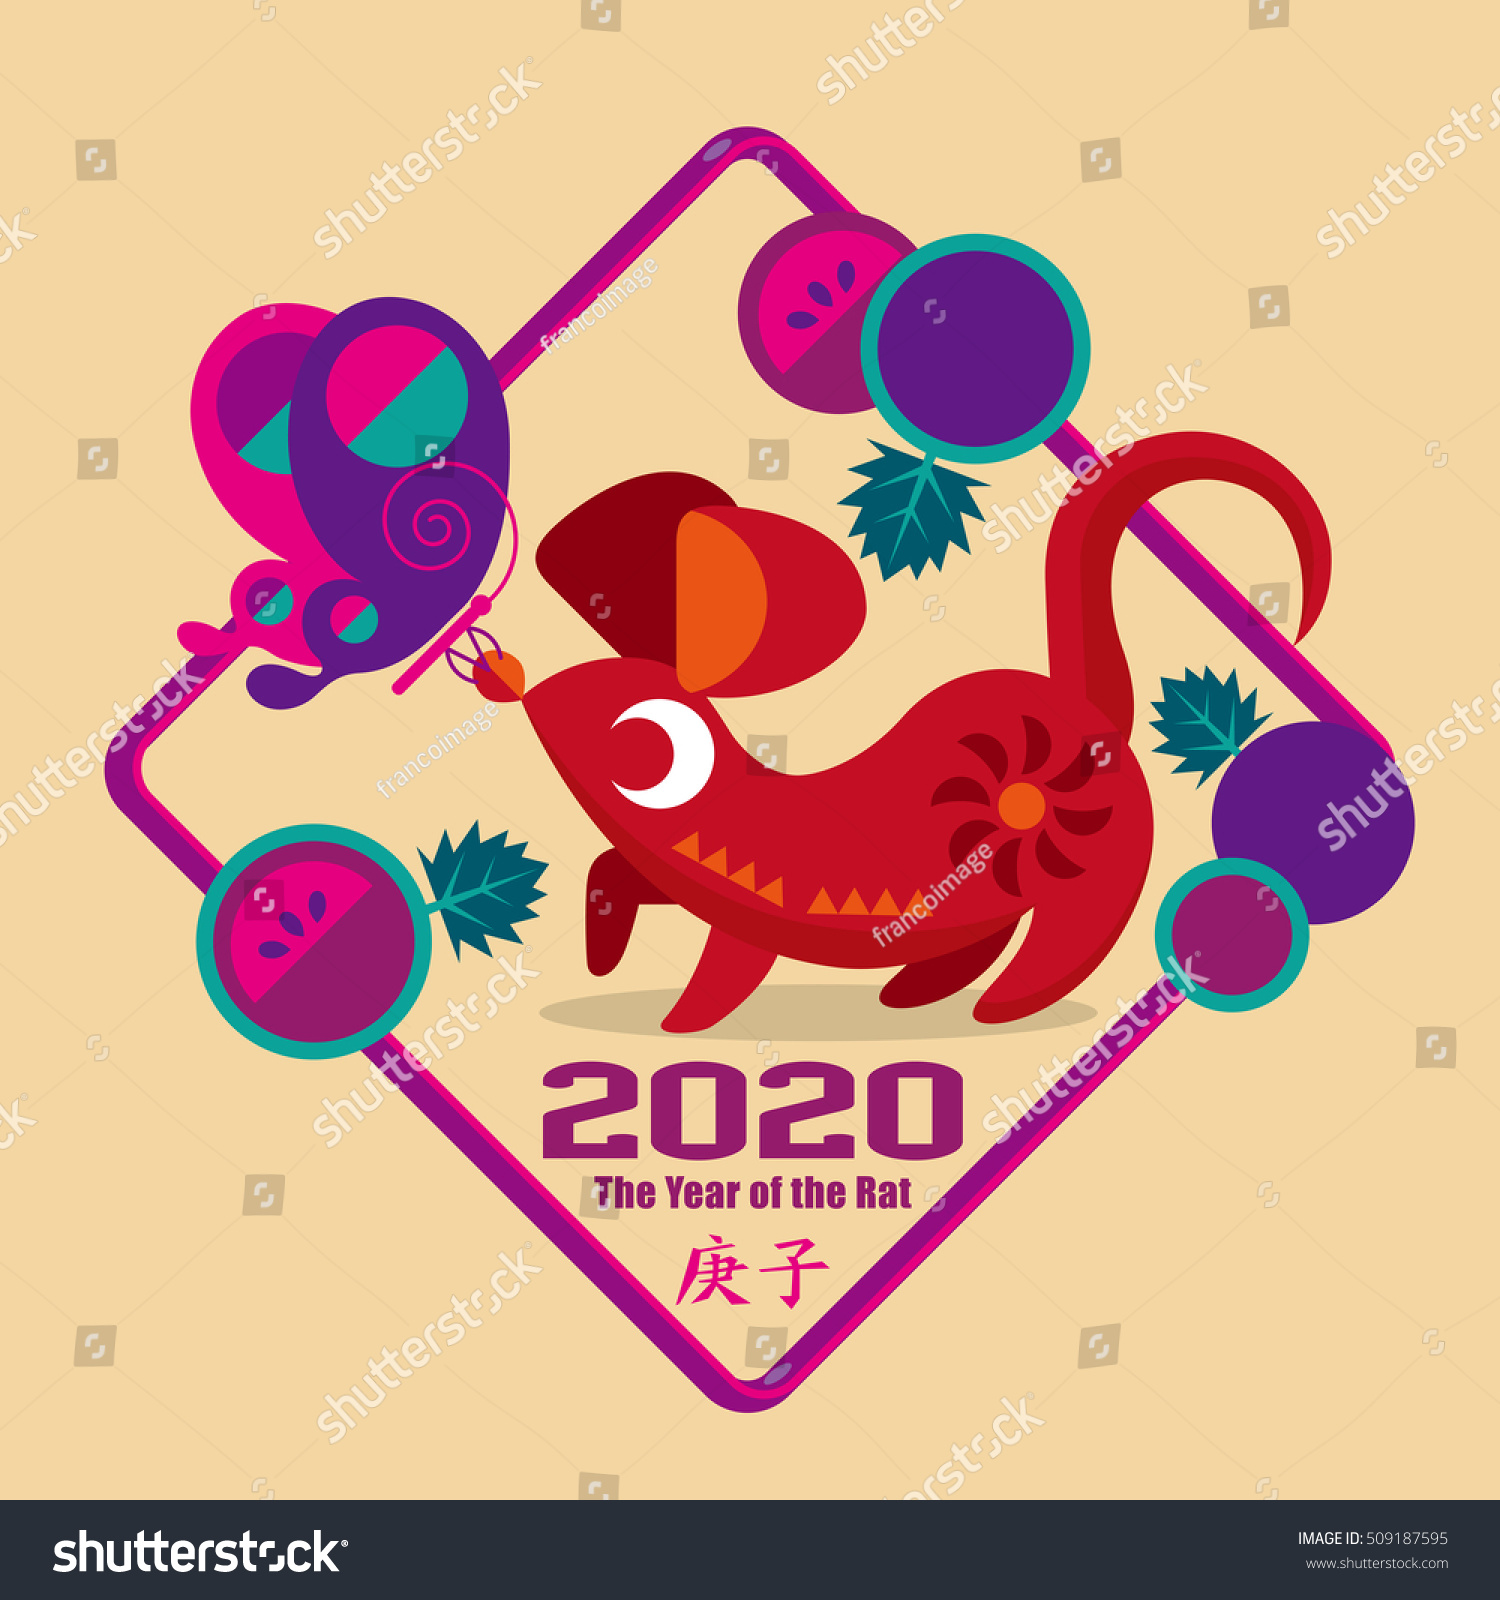 Graphic Icon Chinese Year Rat 2020 Stock Vector 509187595 Shutterstock